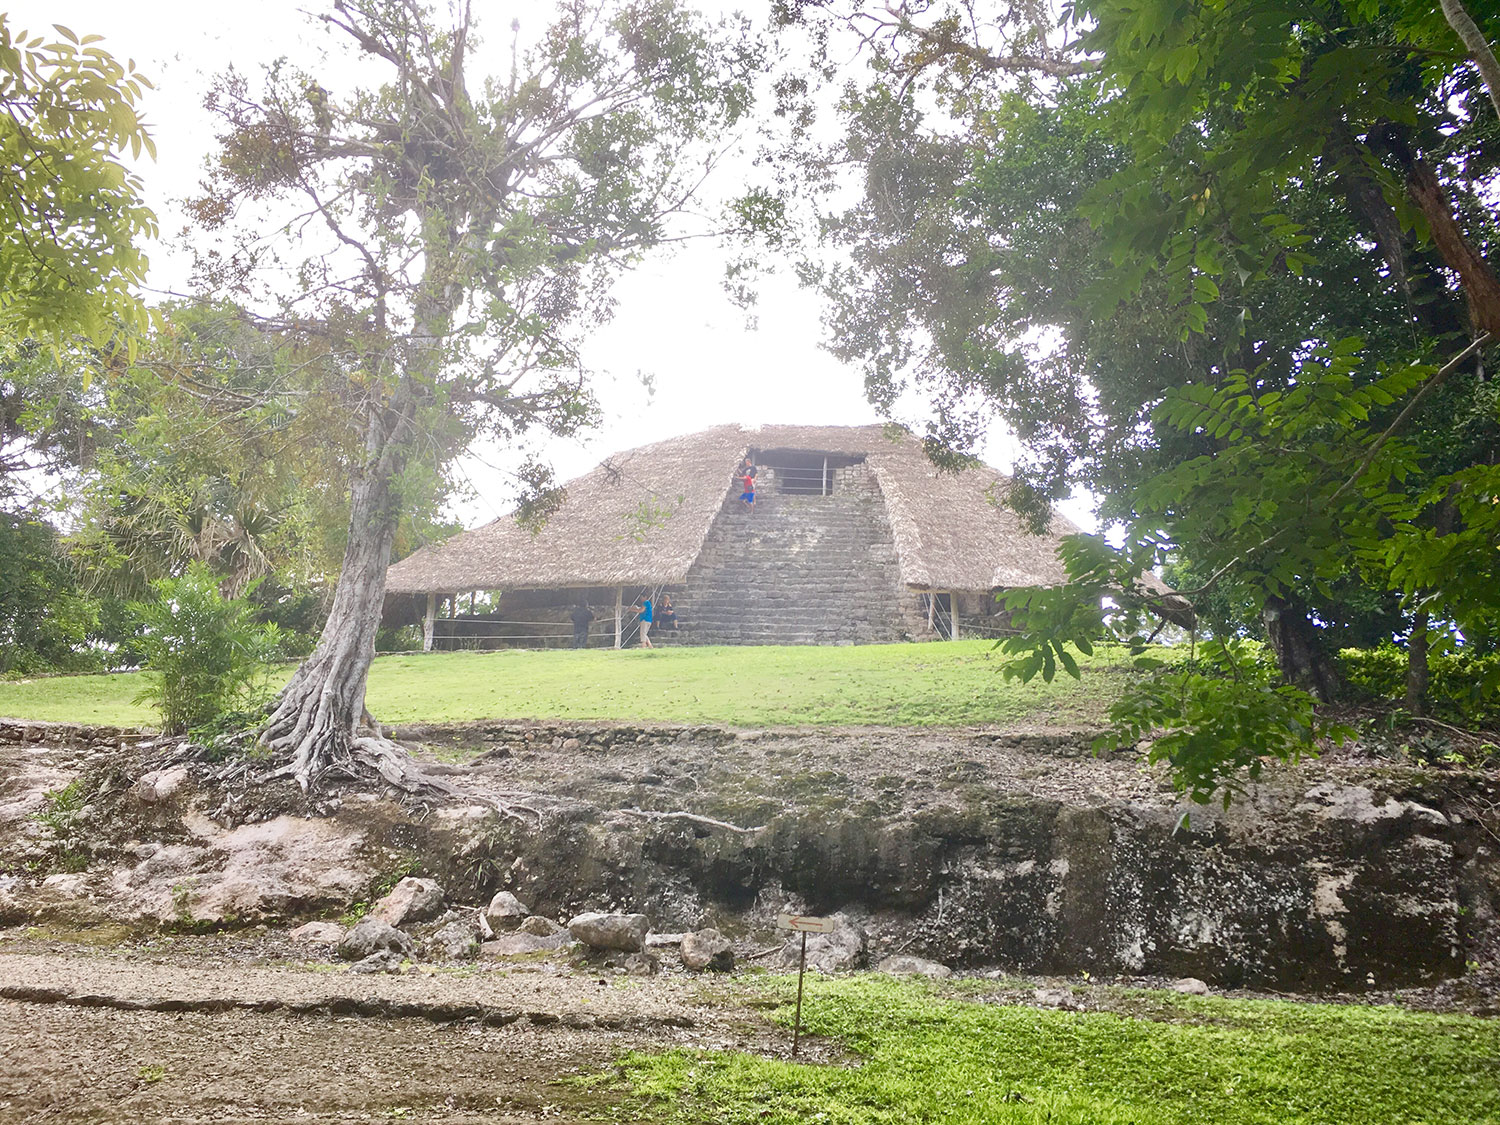 The Temple of Masks, with a thatch roof on each side of the stairway.